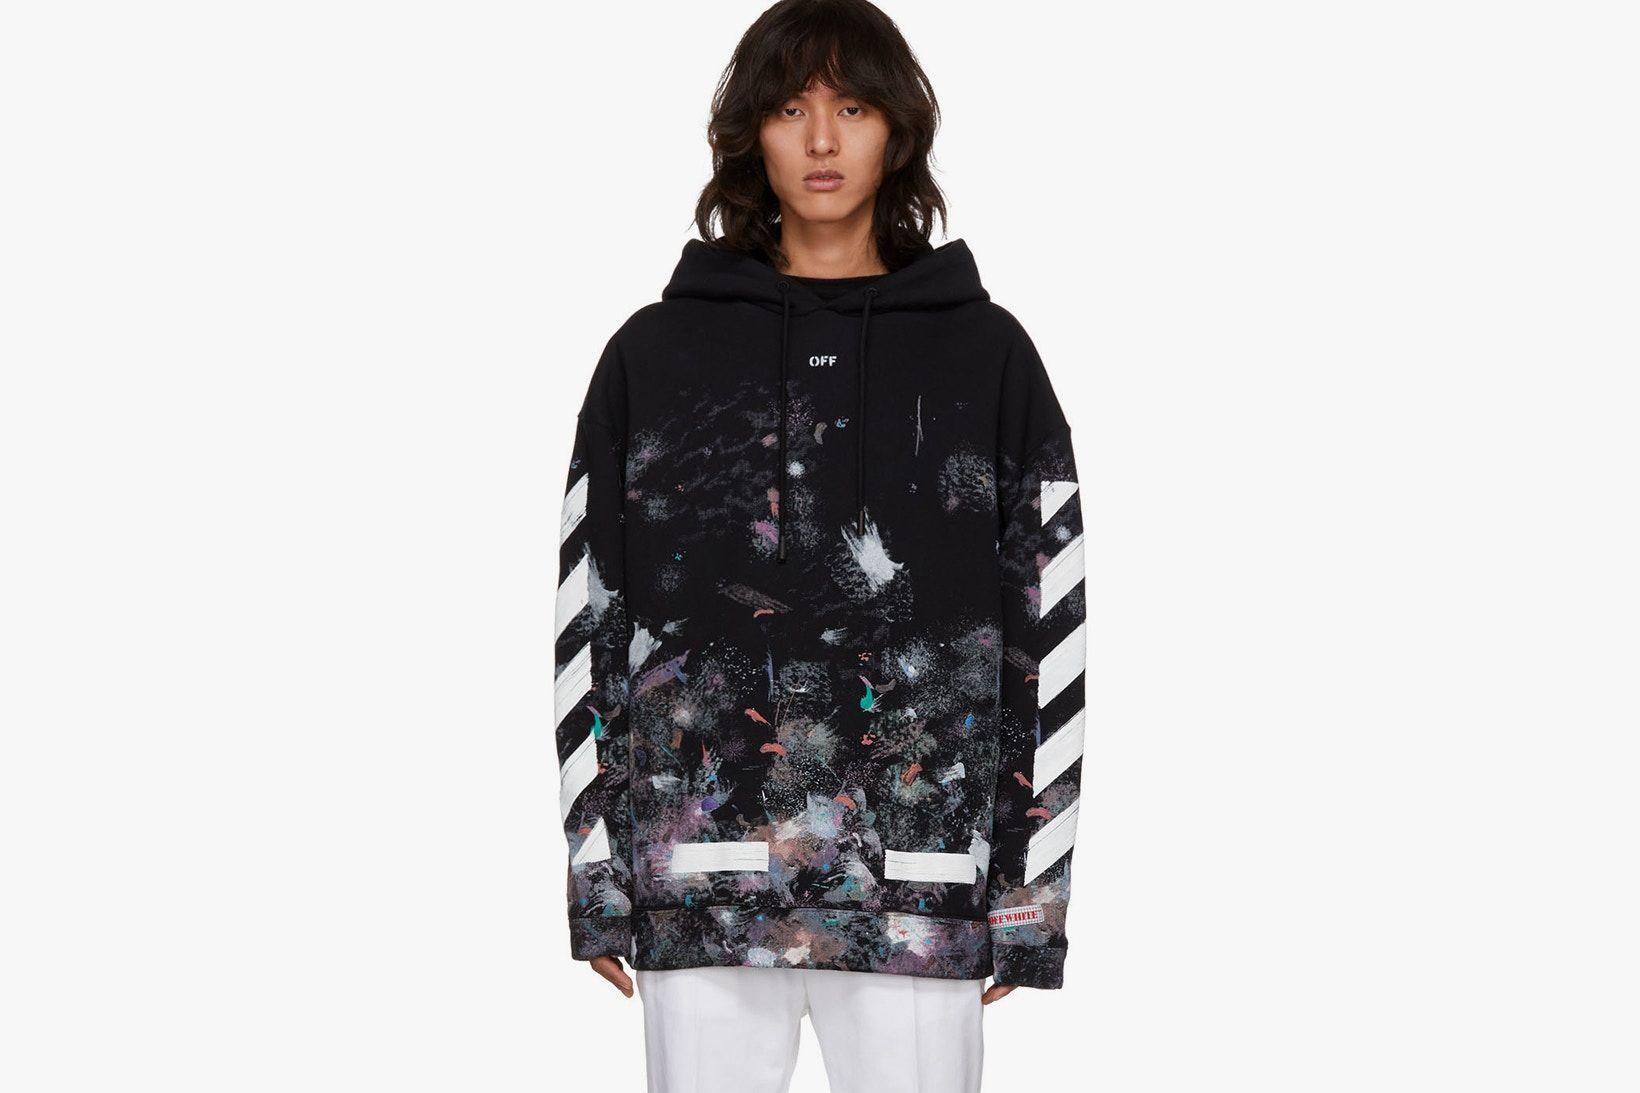 Ssense Exclusive Off White Galaxy Hoodie T Shirt Now Available For Purchase Off White Hoodie Galaxy Hoodie White Hoodie [ 1093 x 1640 Pixel ]